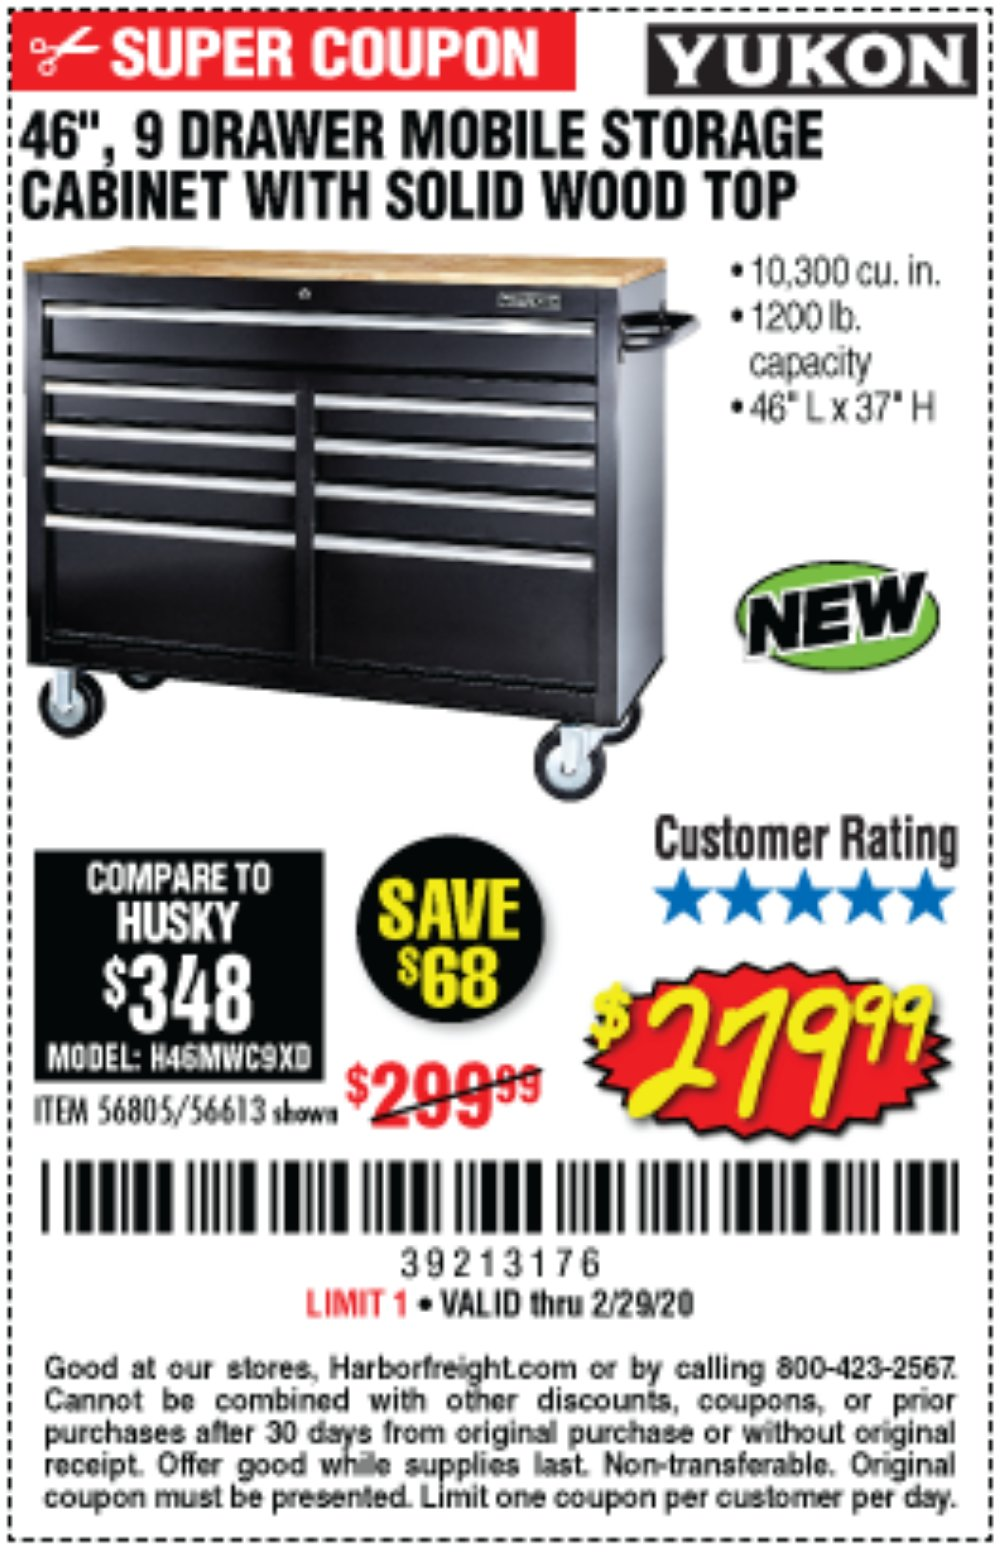 Harbor Freight Coupon, HF Coupons - 56613